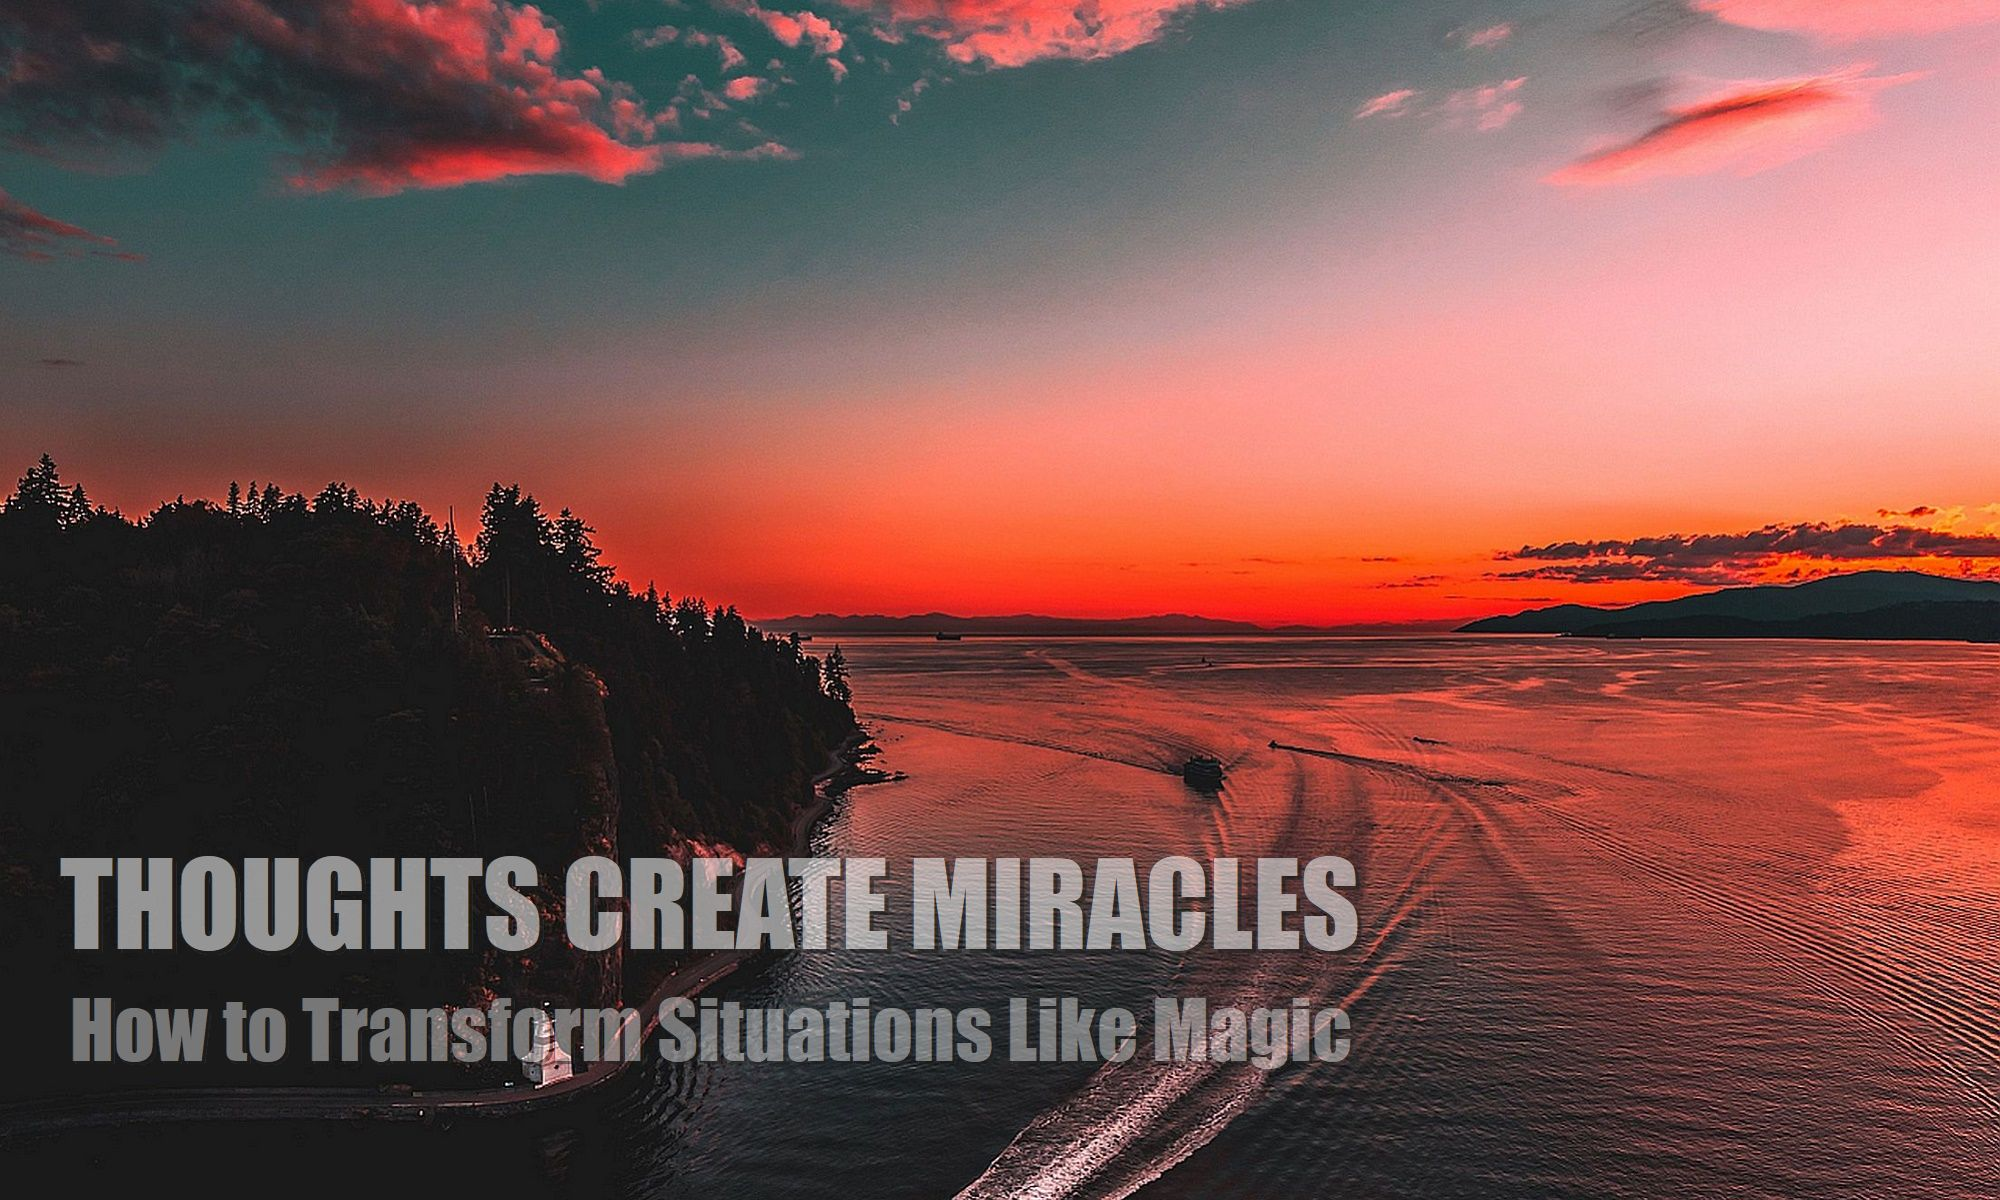 How-to-use-imagination-thoughts-to-create-miracles-transform-situations-x-2000